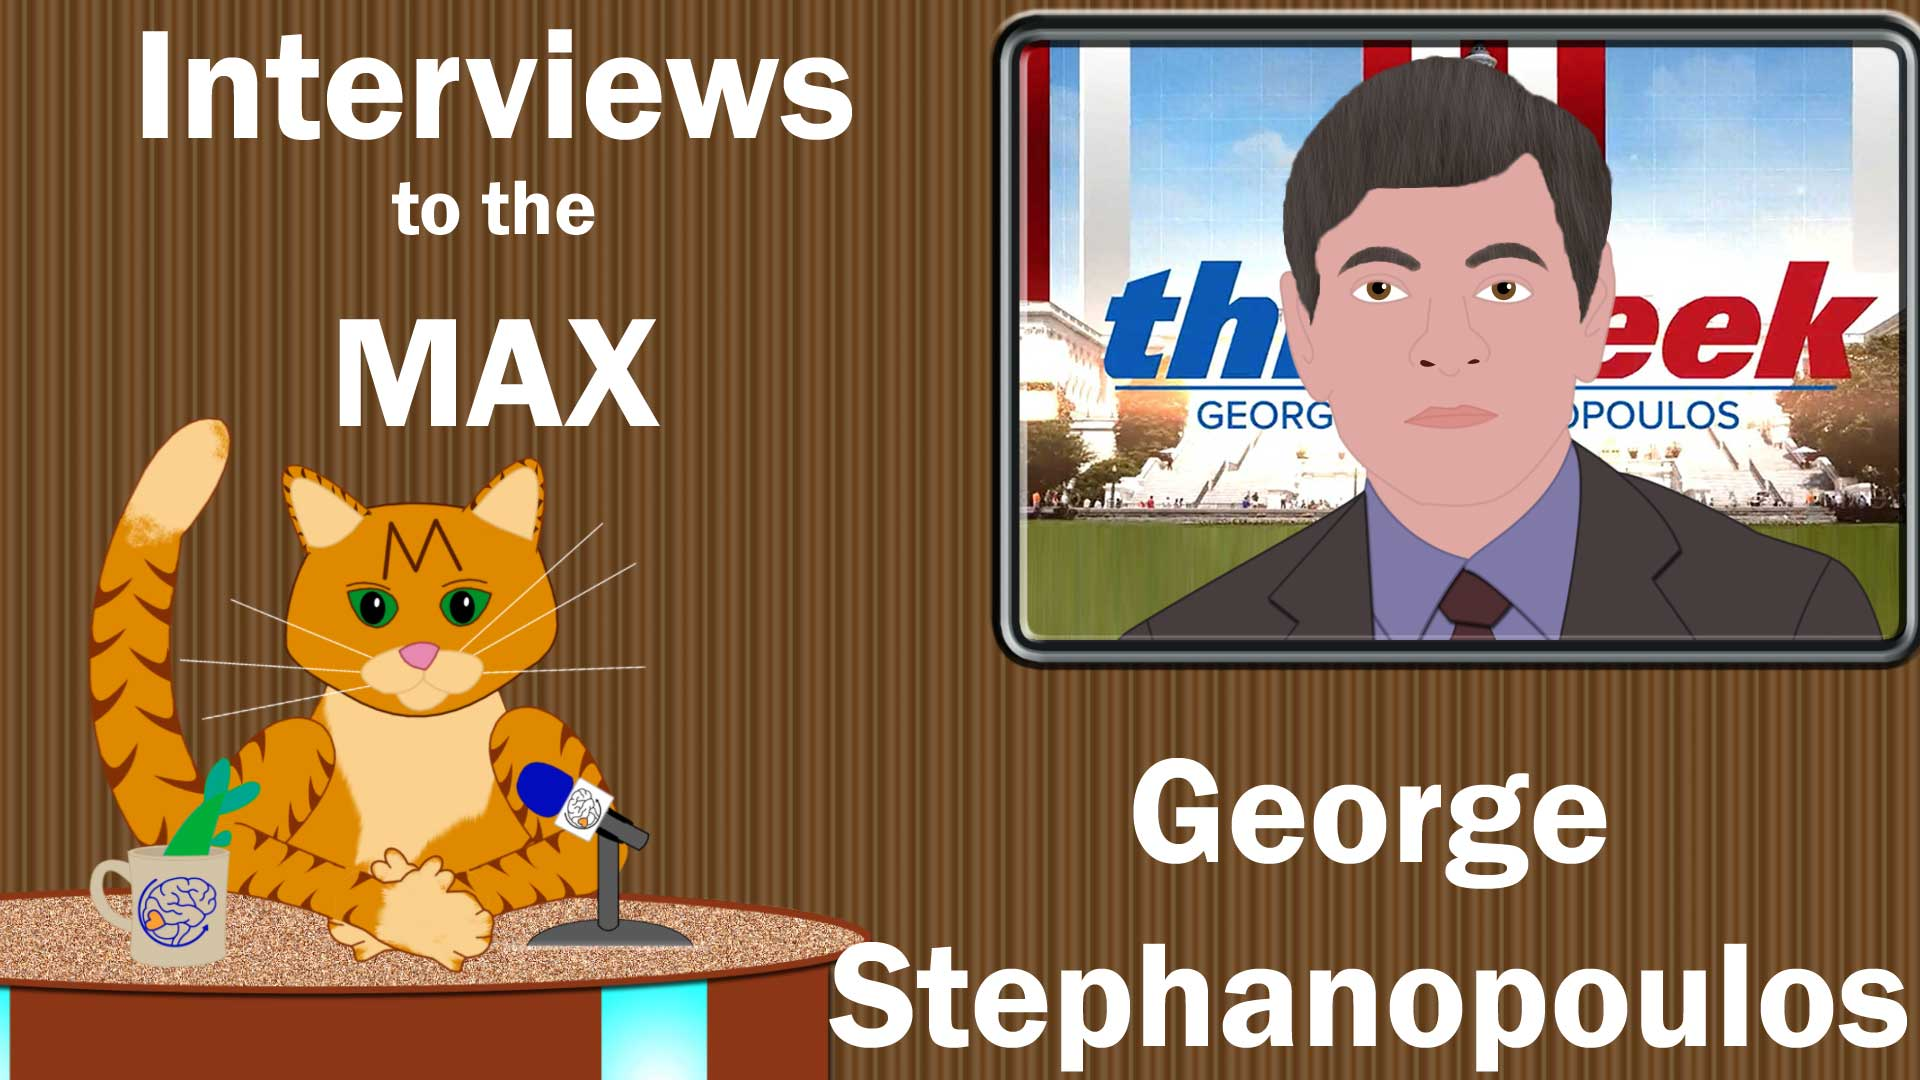 Interviews to the MAX: George Stephanopoulos